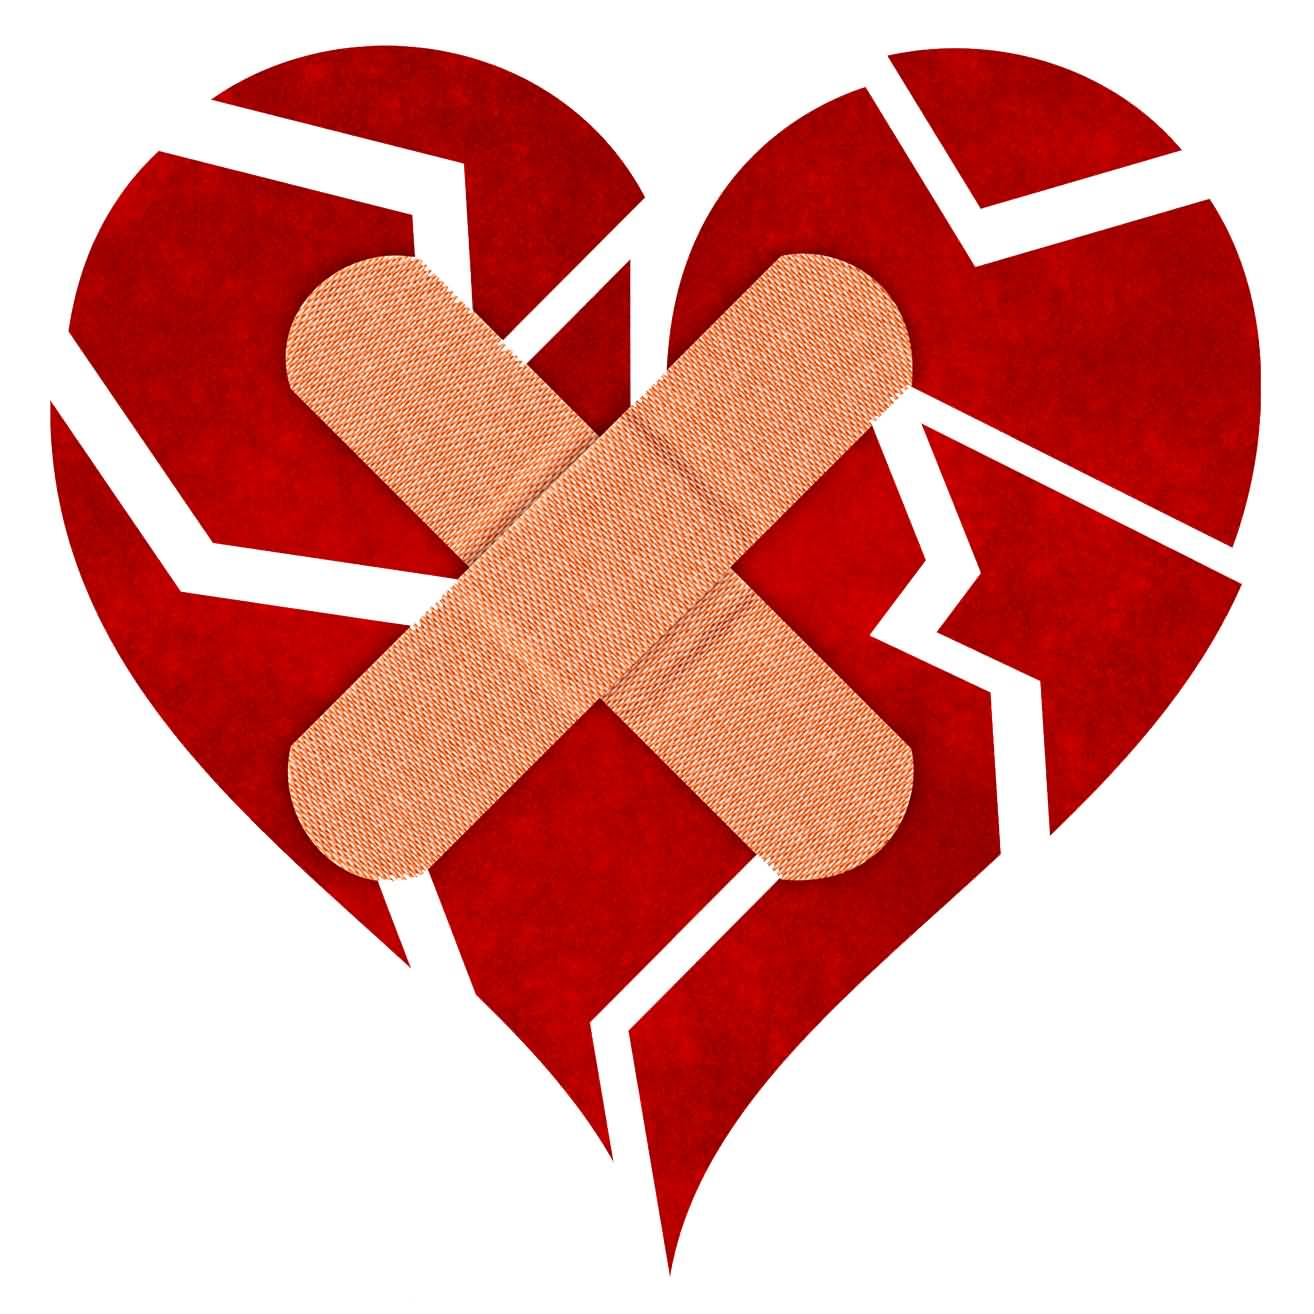 Broken heart with bandage clipart jpg free download 55 Best Broken Heart Pictures And Images jpg free download